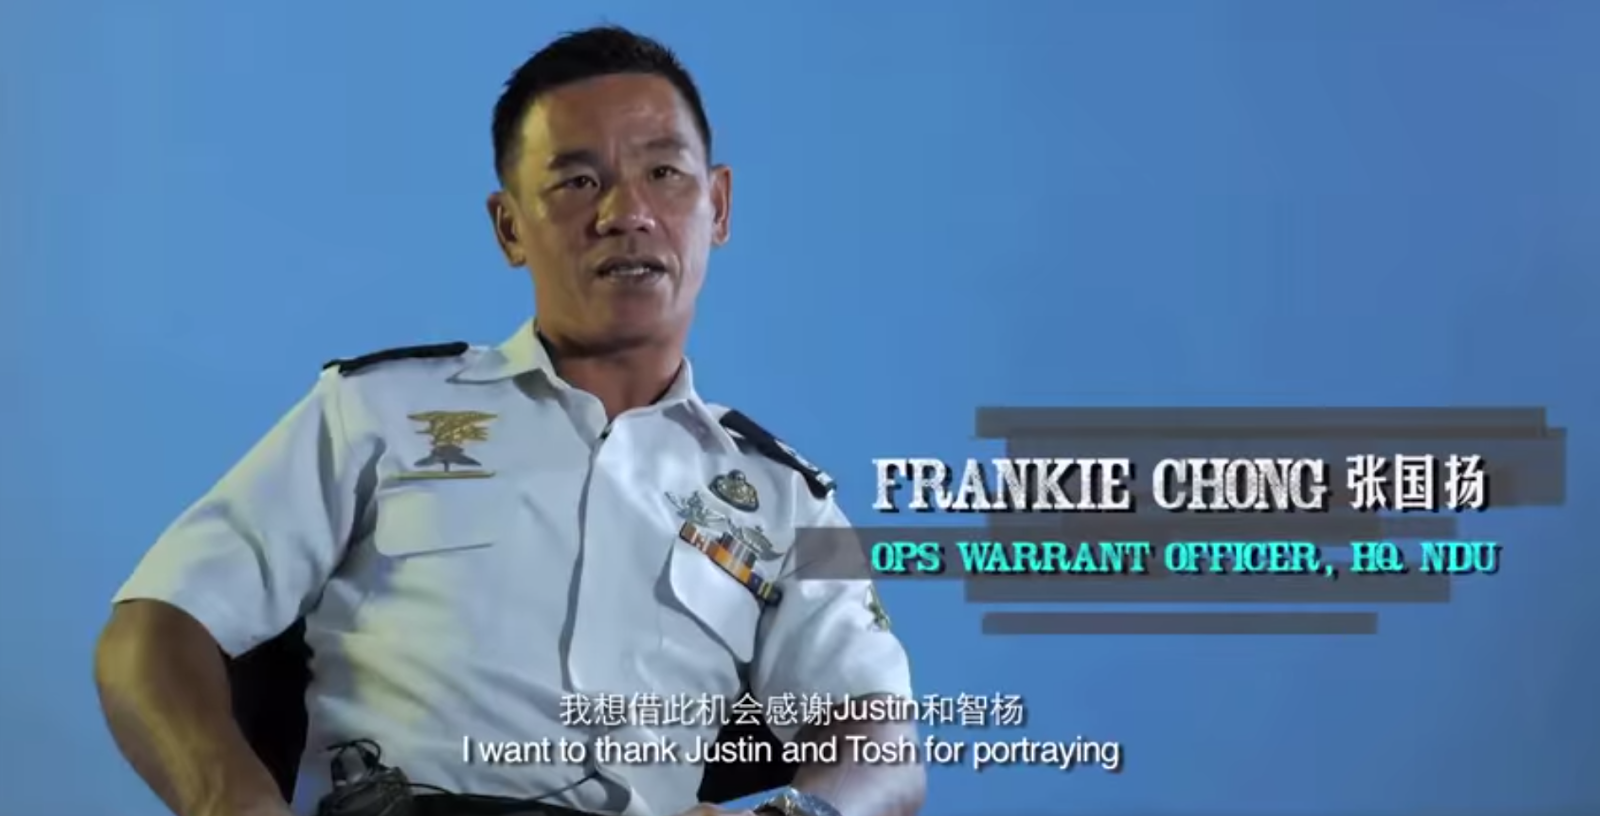 Warrant Officer Frankie Chong